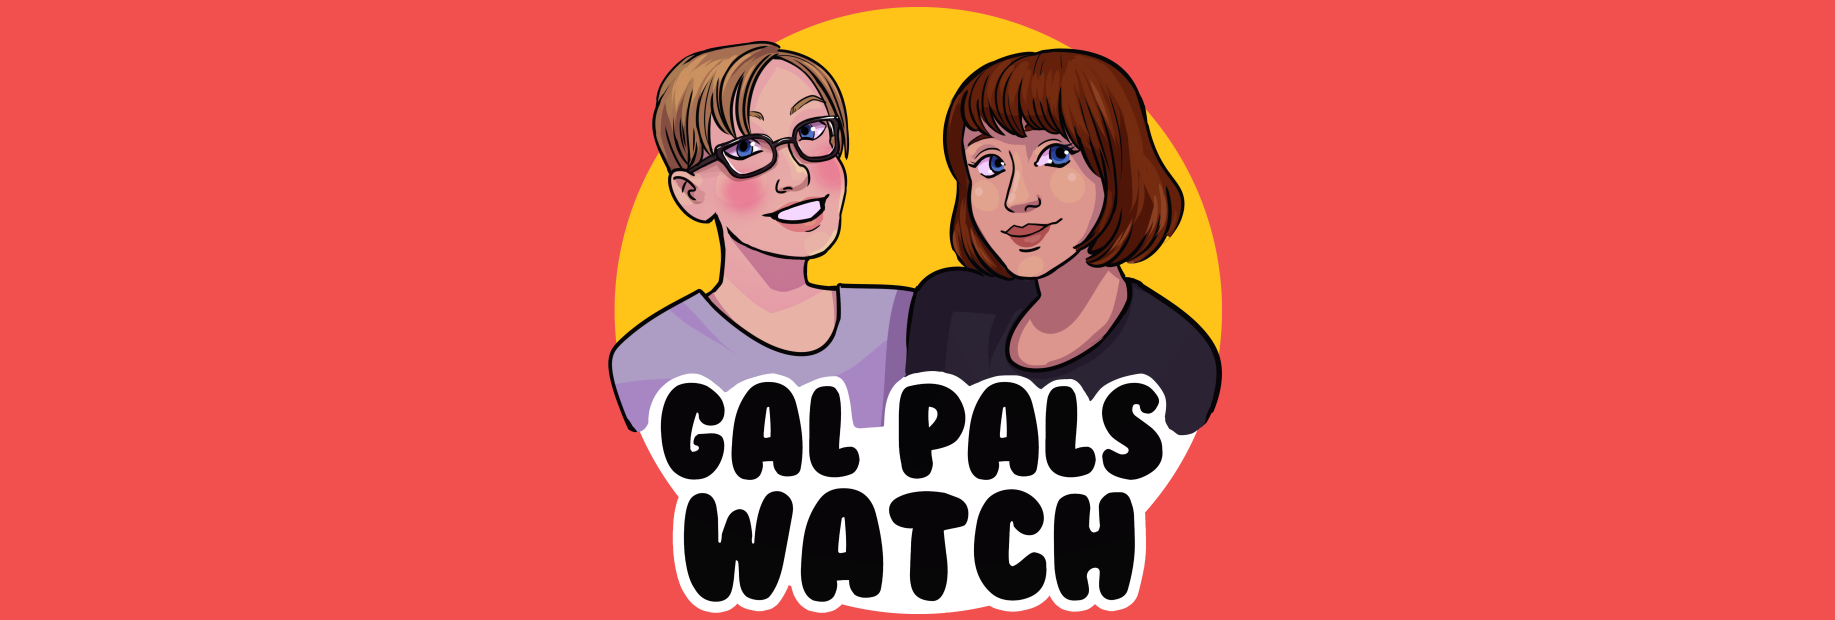 Cartoon Style Header of Gal Pals Watch Podcast